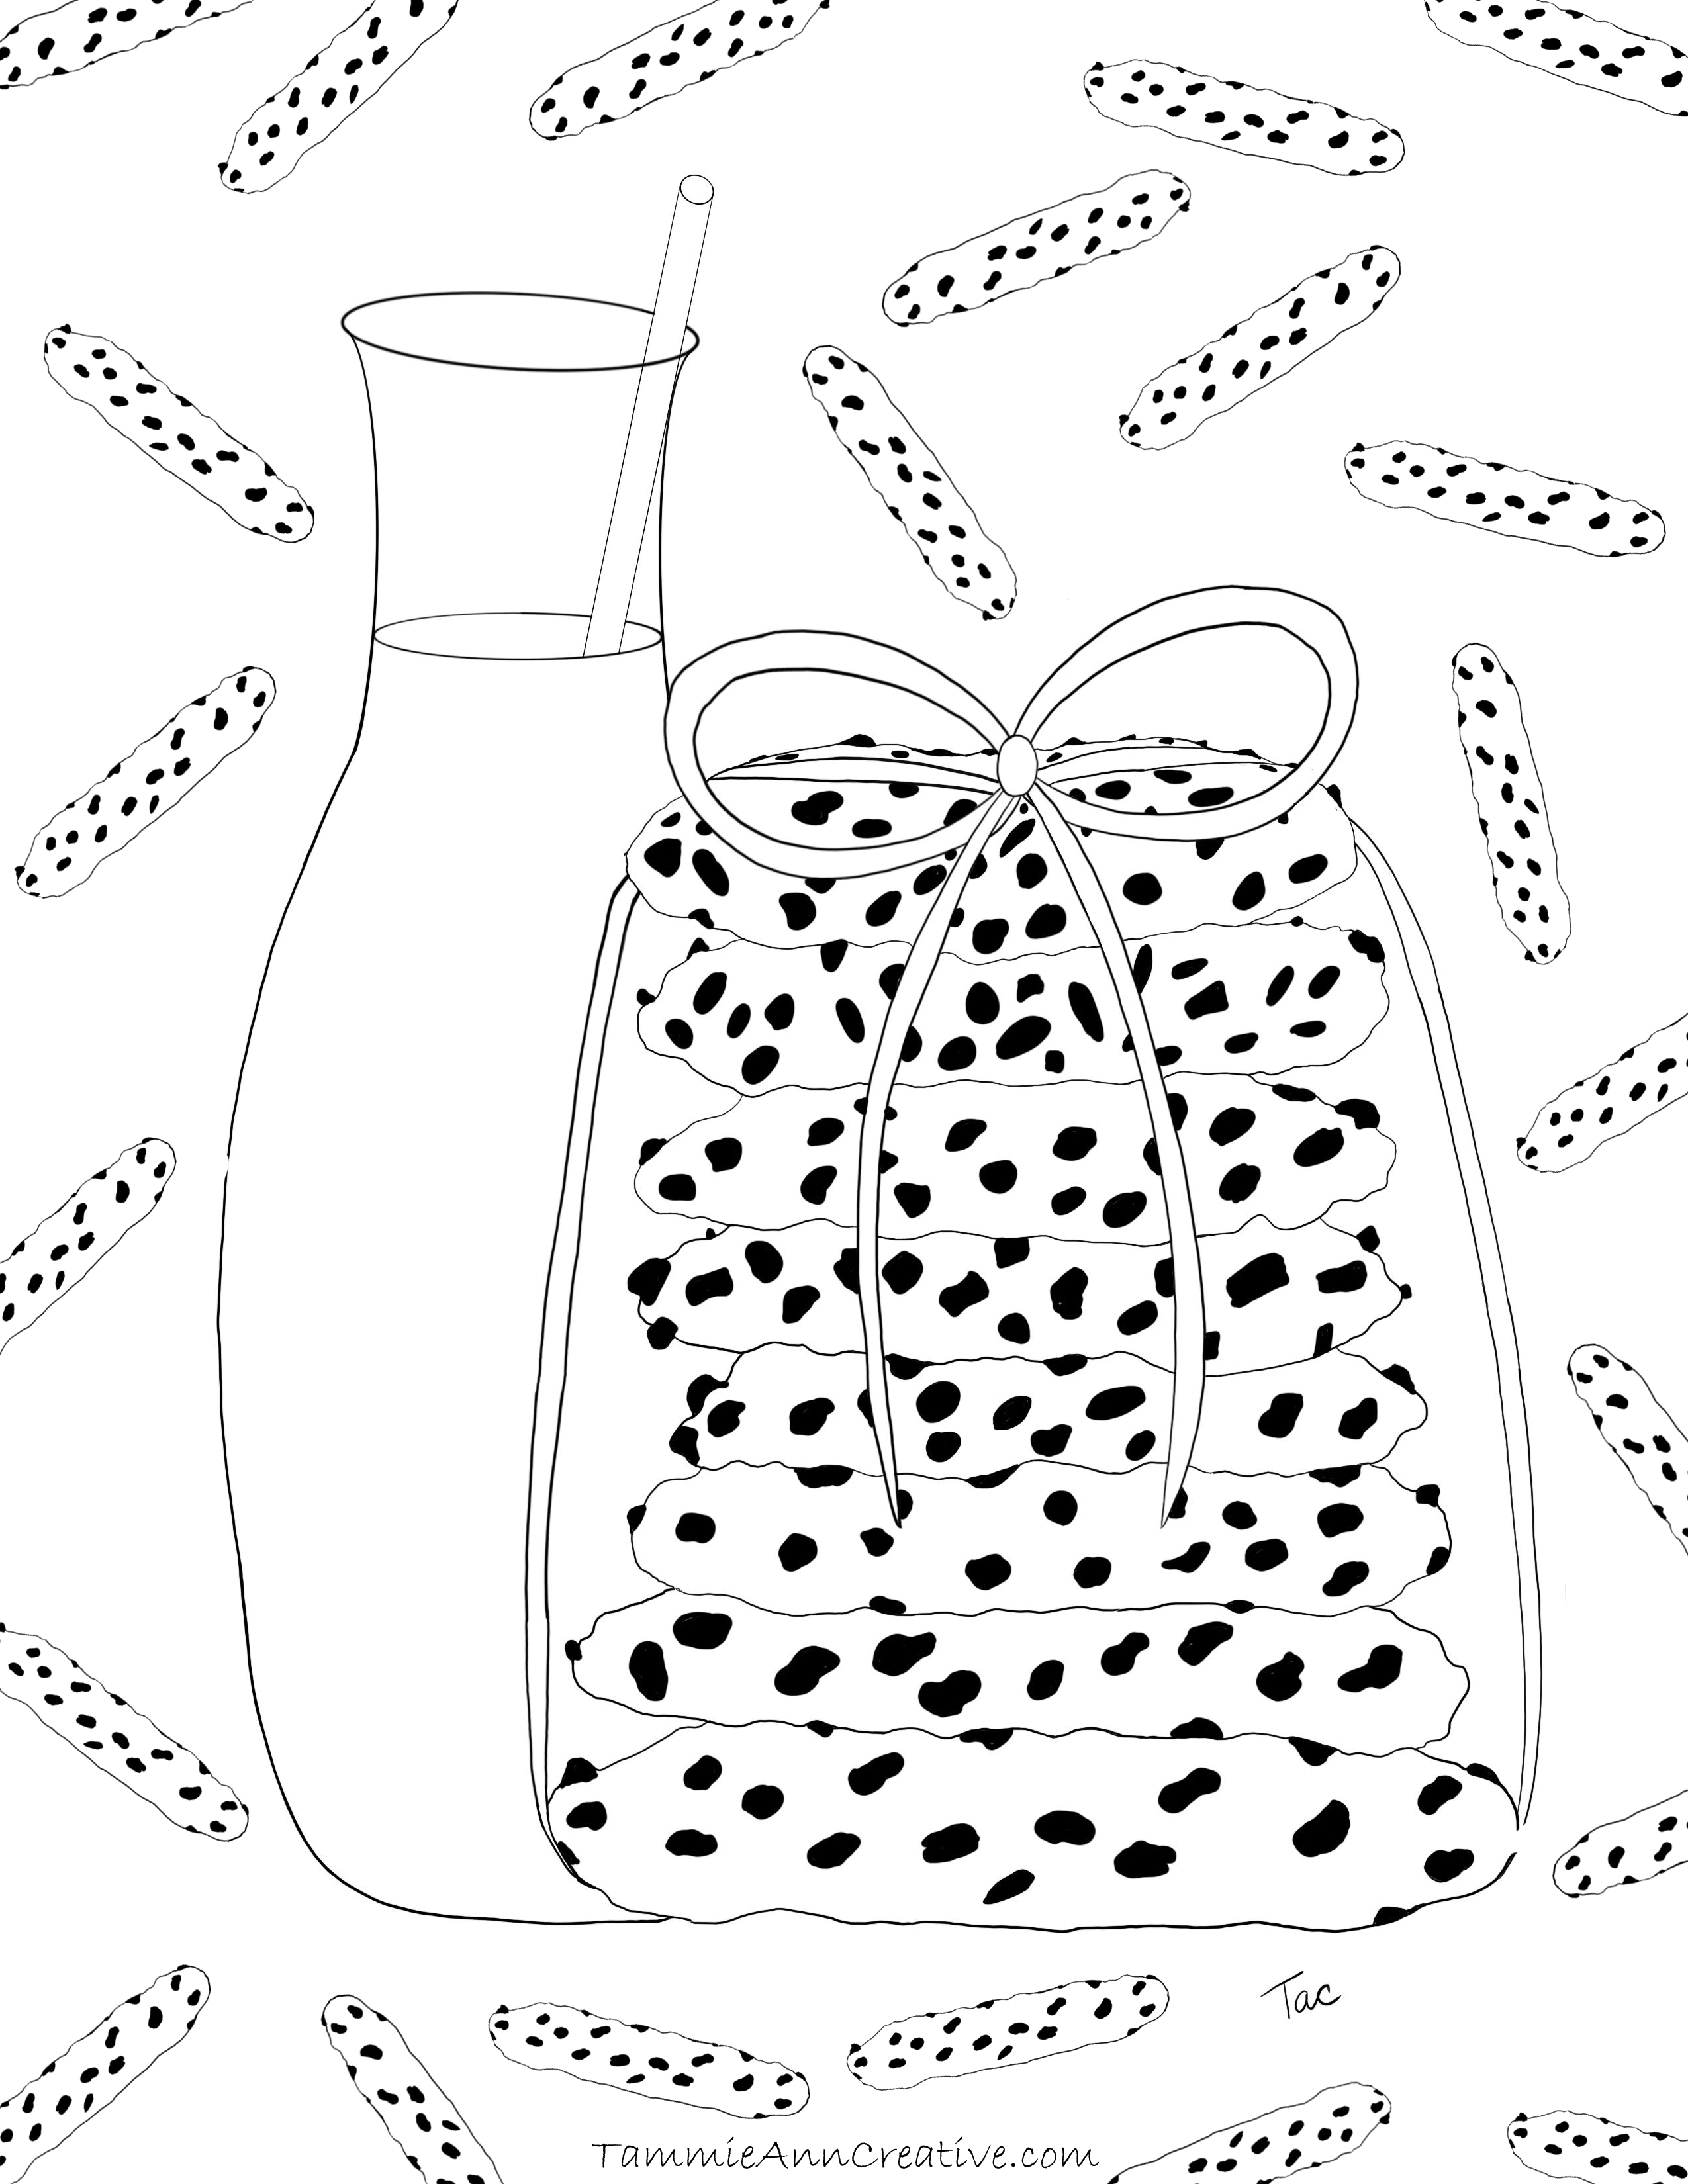 Chocolate Chip Cookies & Milk Free Coloring Book Download Page